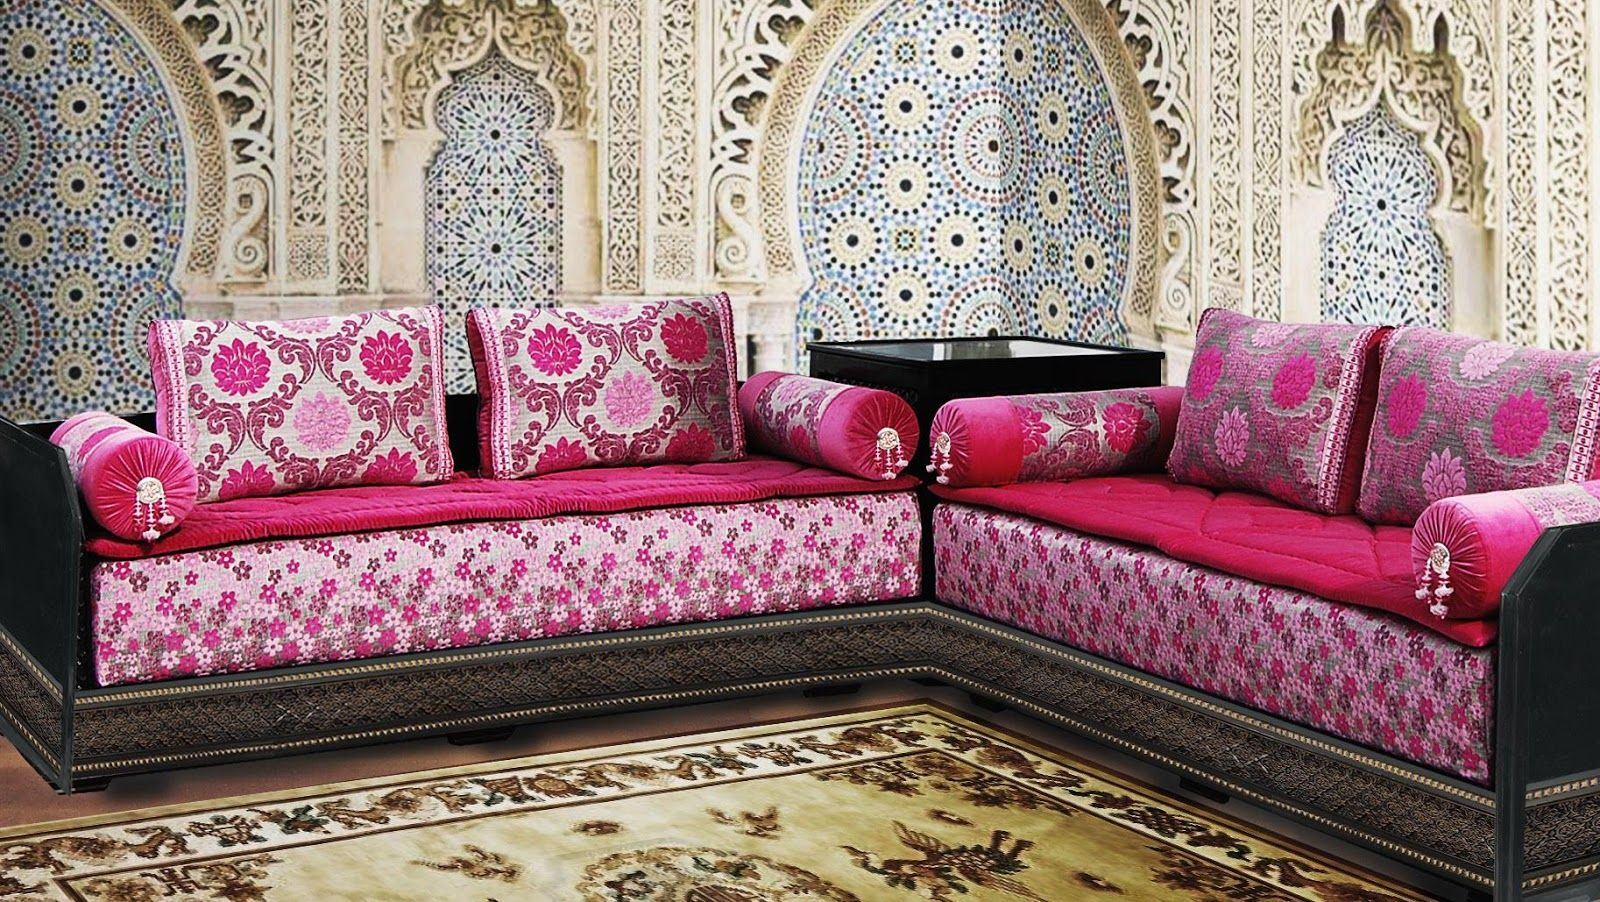 canape arabe canape arabe with canape arabe dernire canap conception arabique style canap. Black Bedroom Furniture Sets. Home Design Ideas